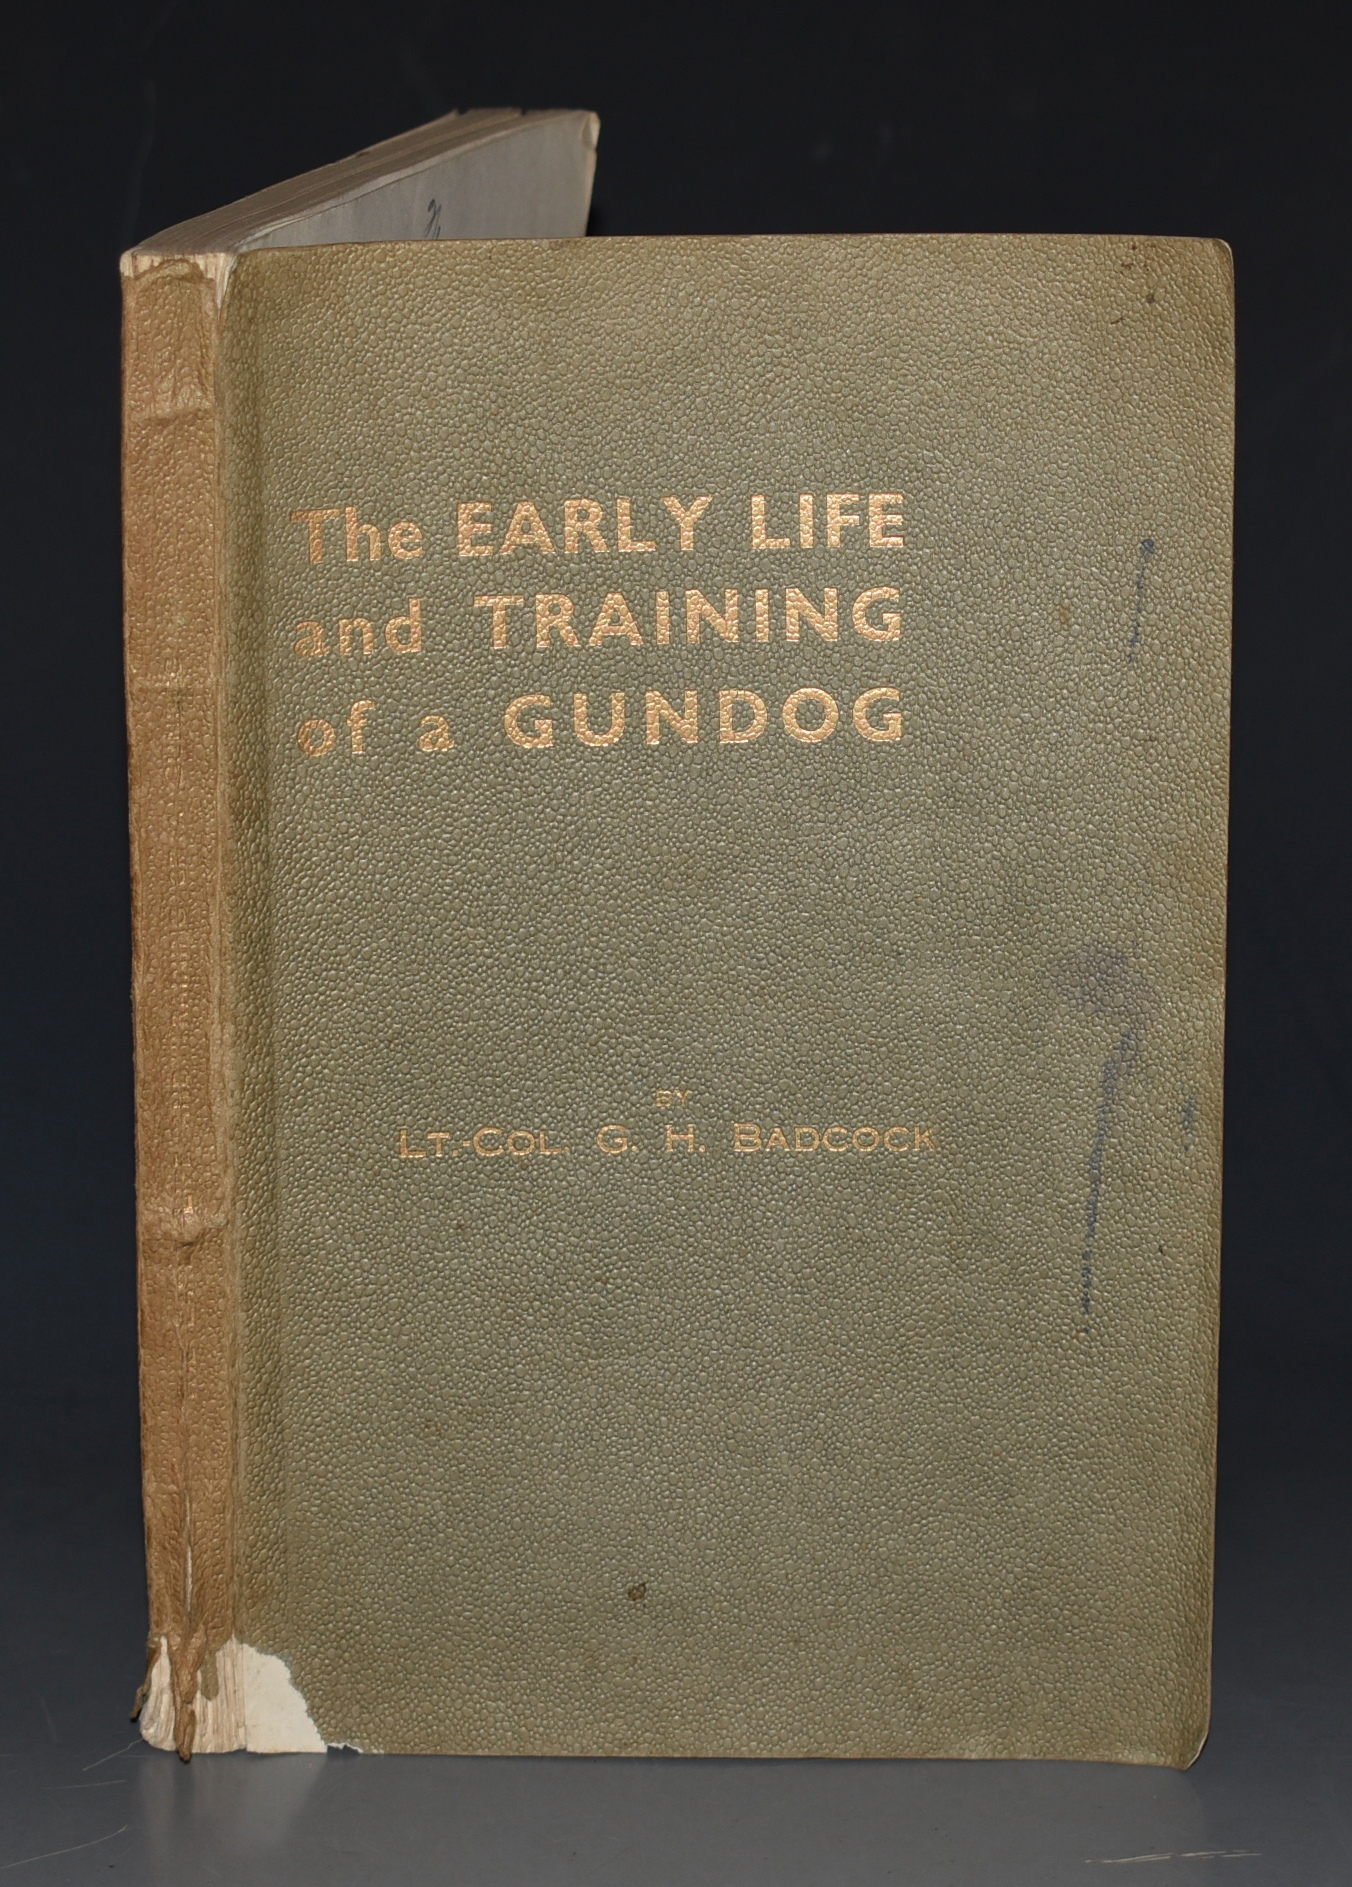 Image for The Early Life and Training of a Gundog With a foreword by Lord Lonsdale.